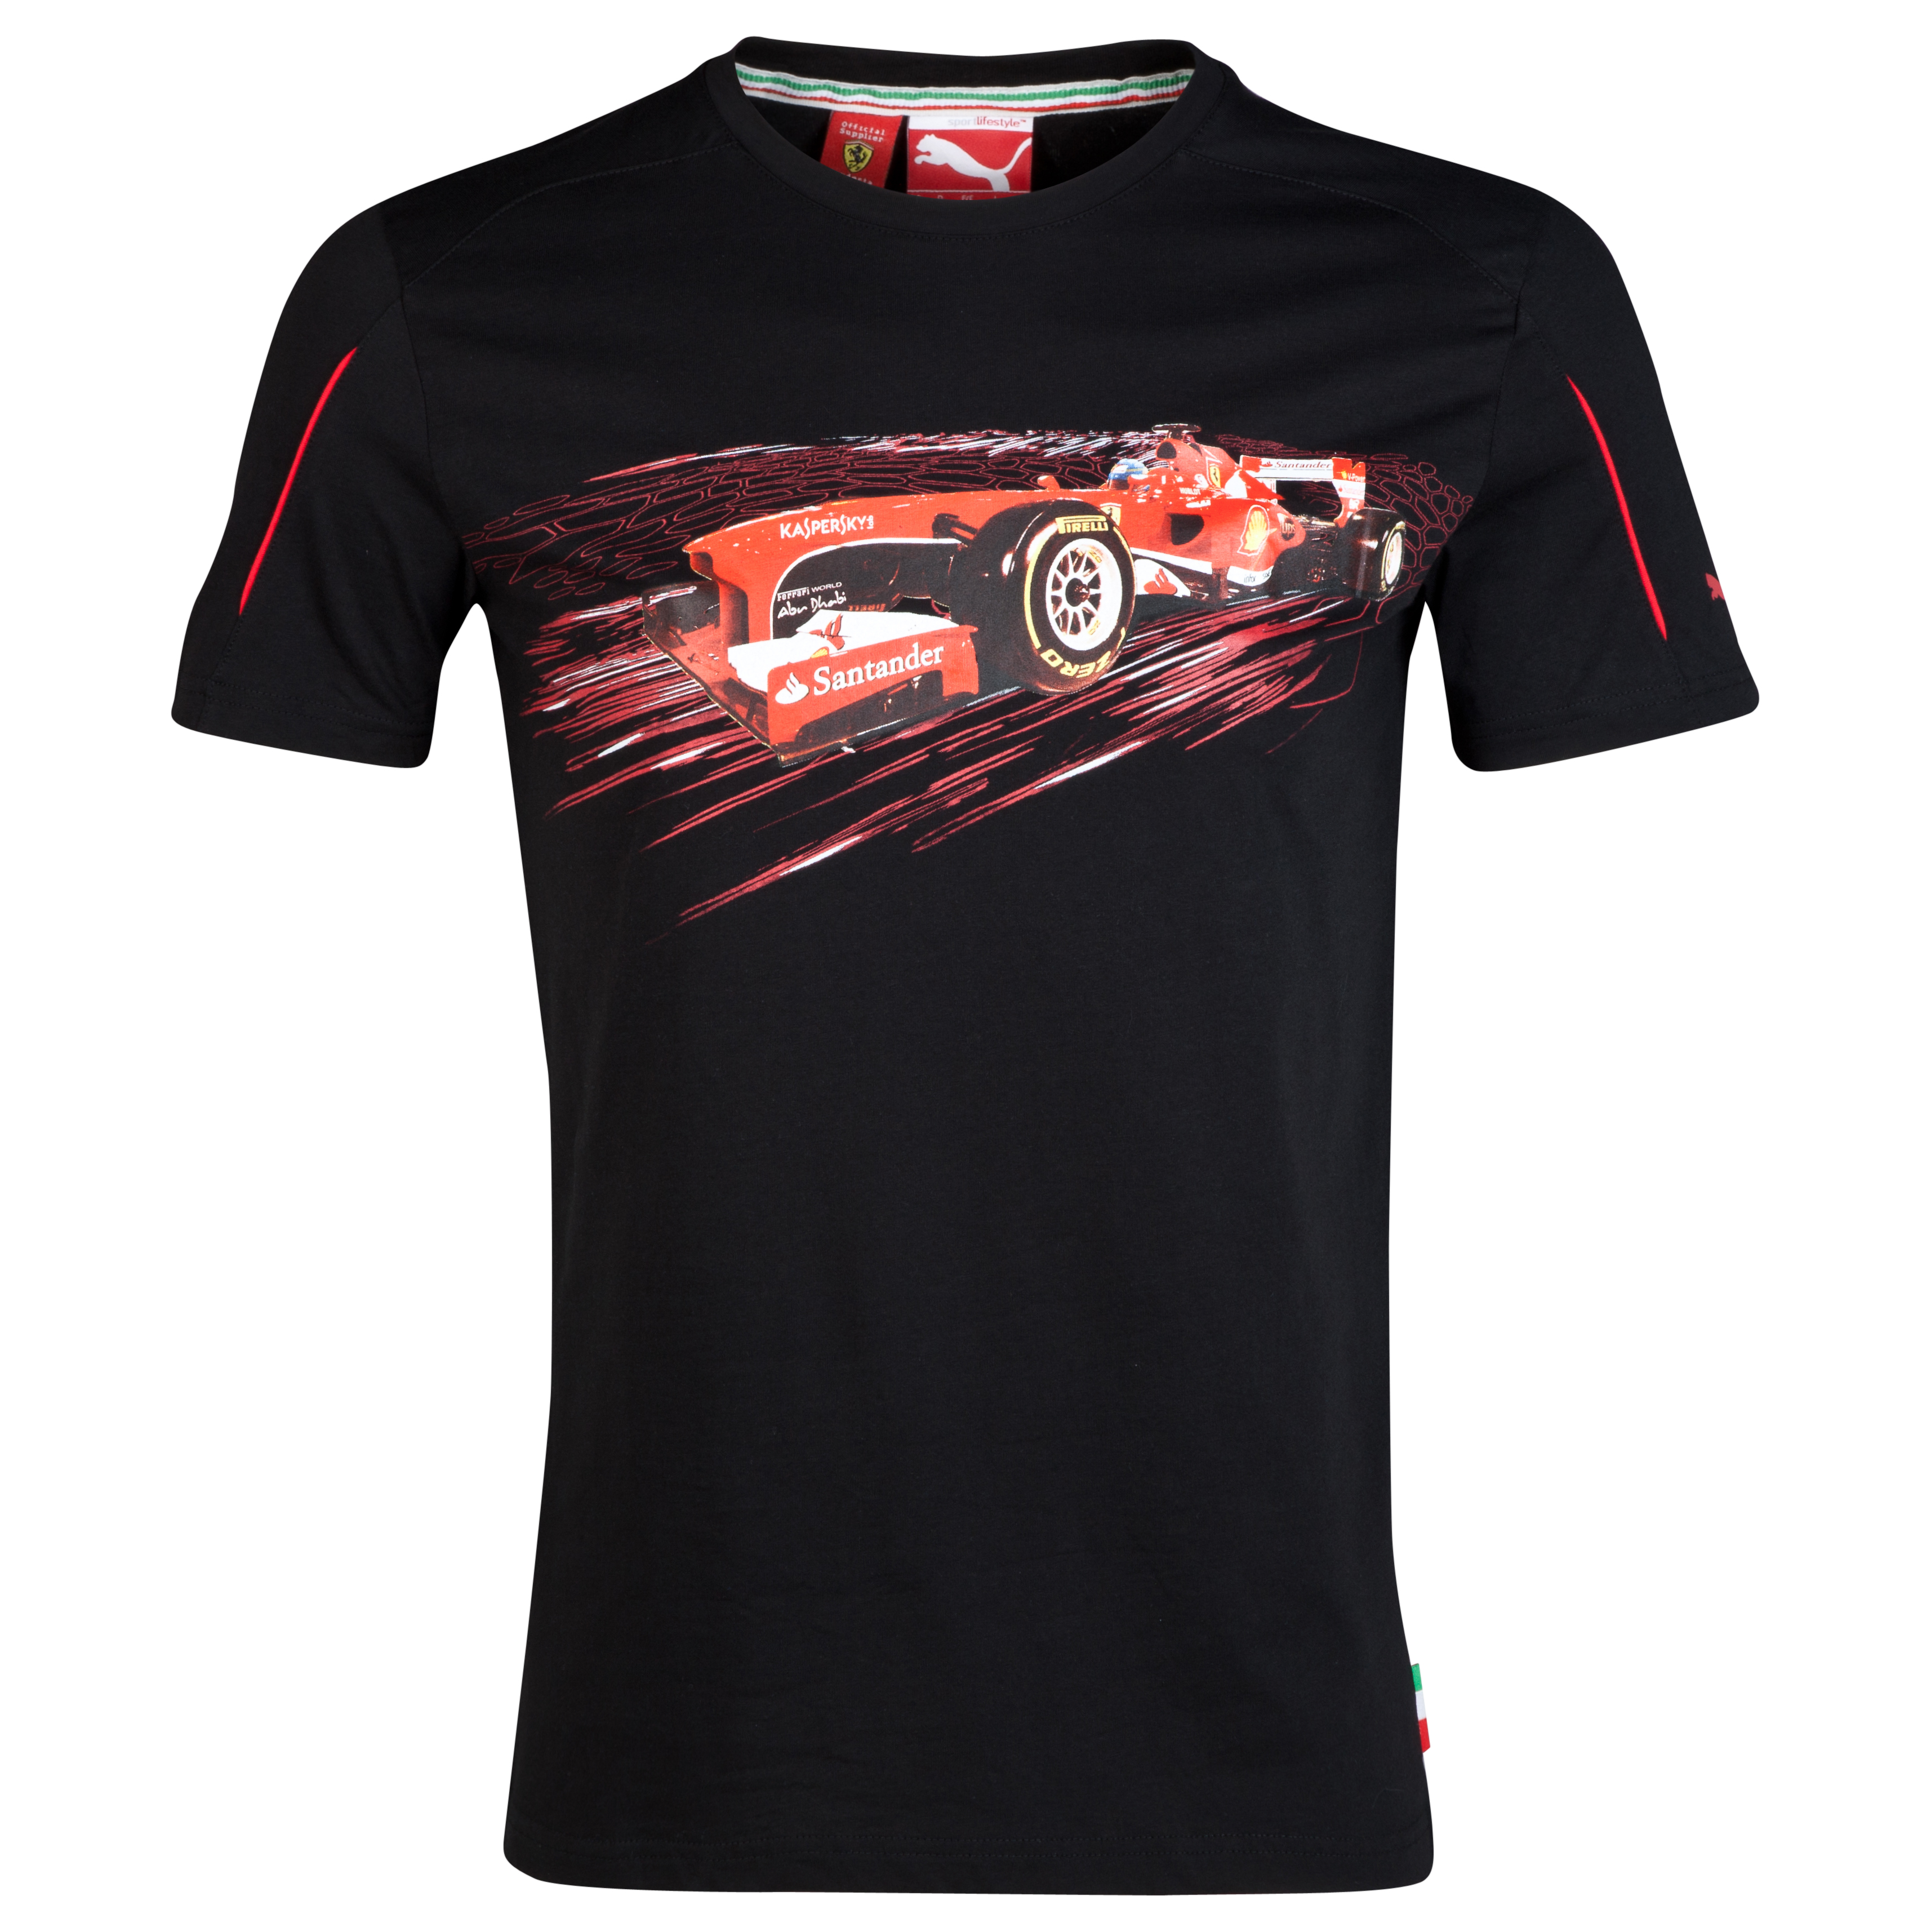 Scuderia Ferrari Graphic T-Shirt Black